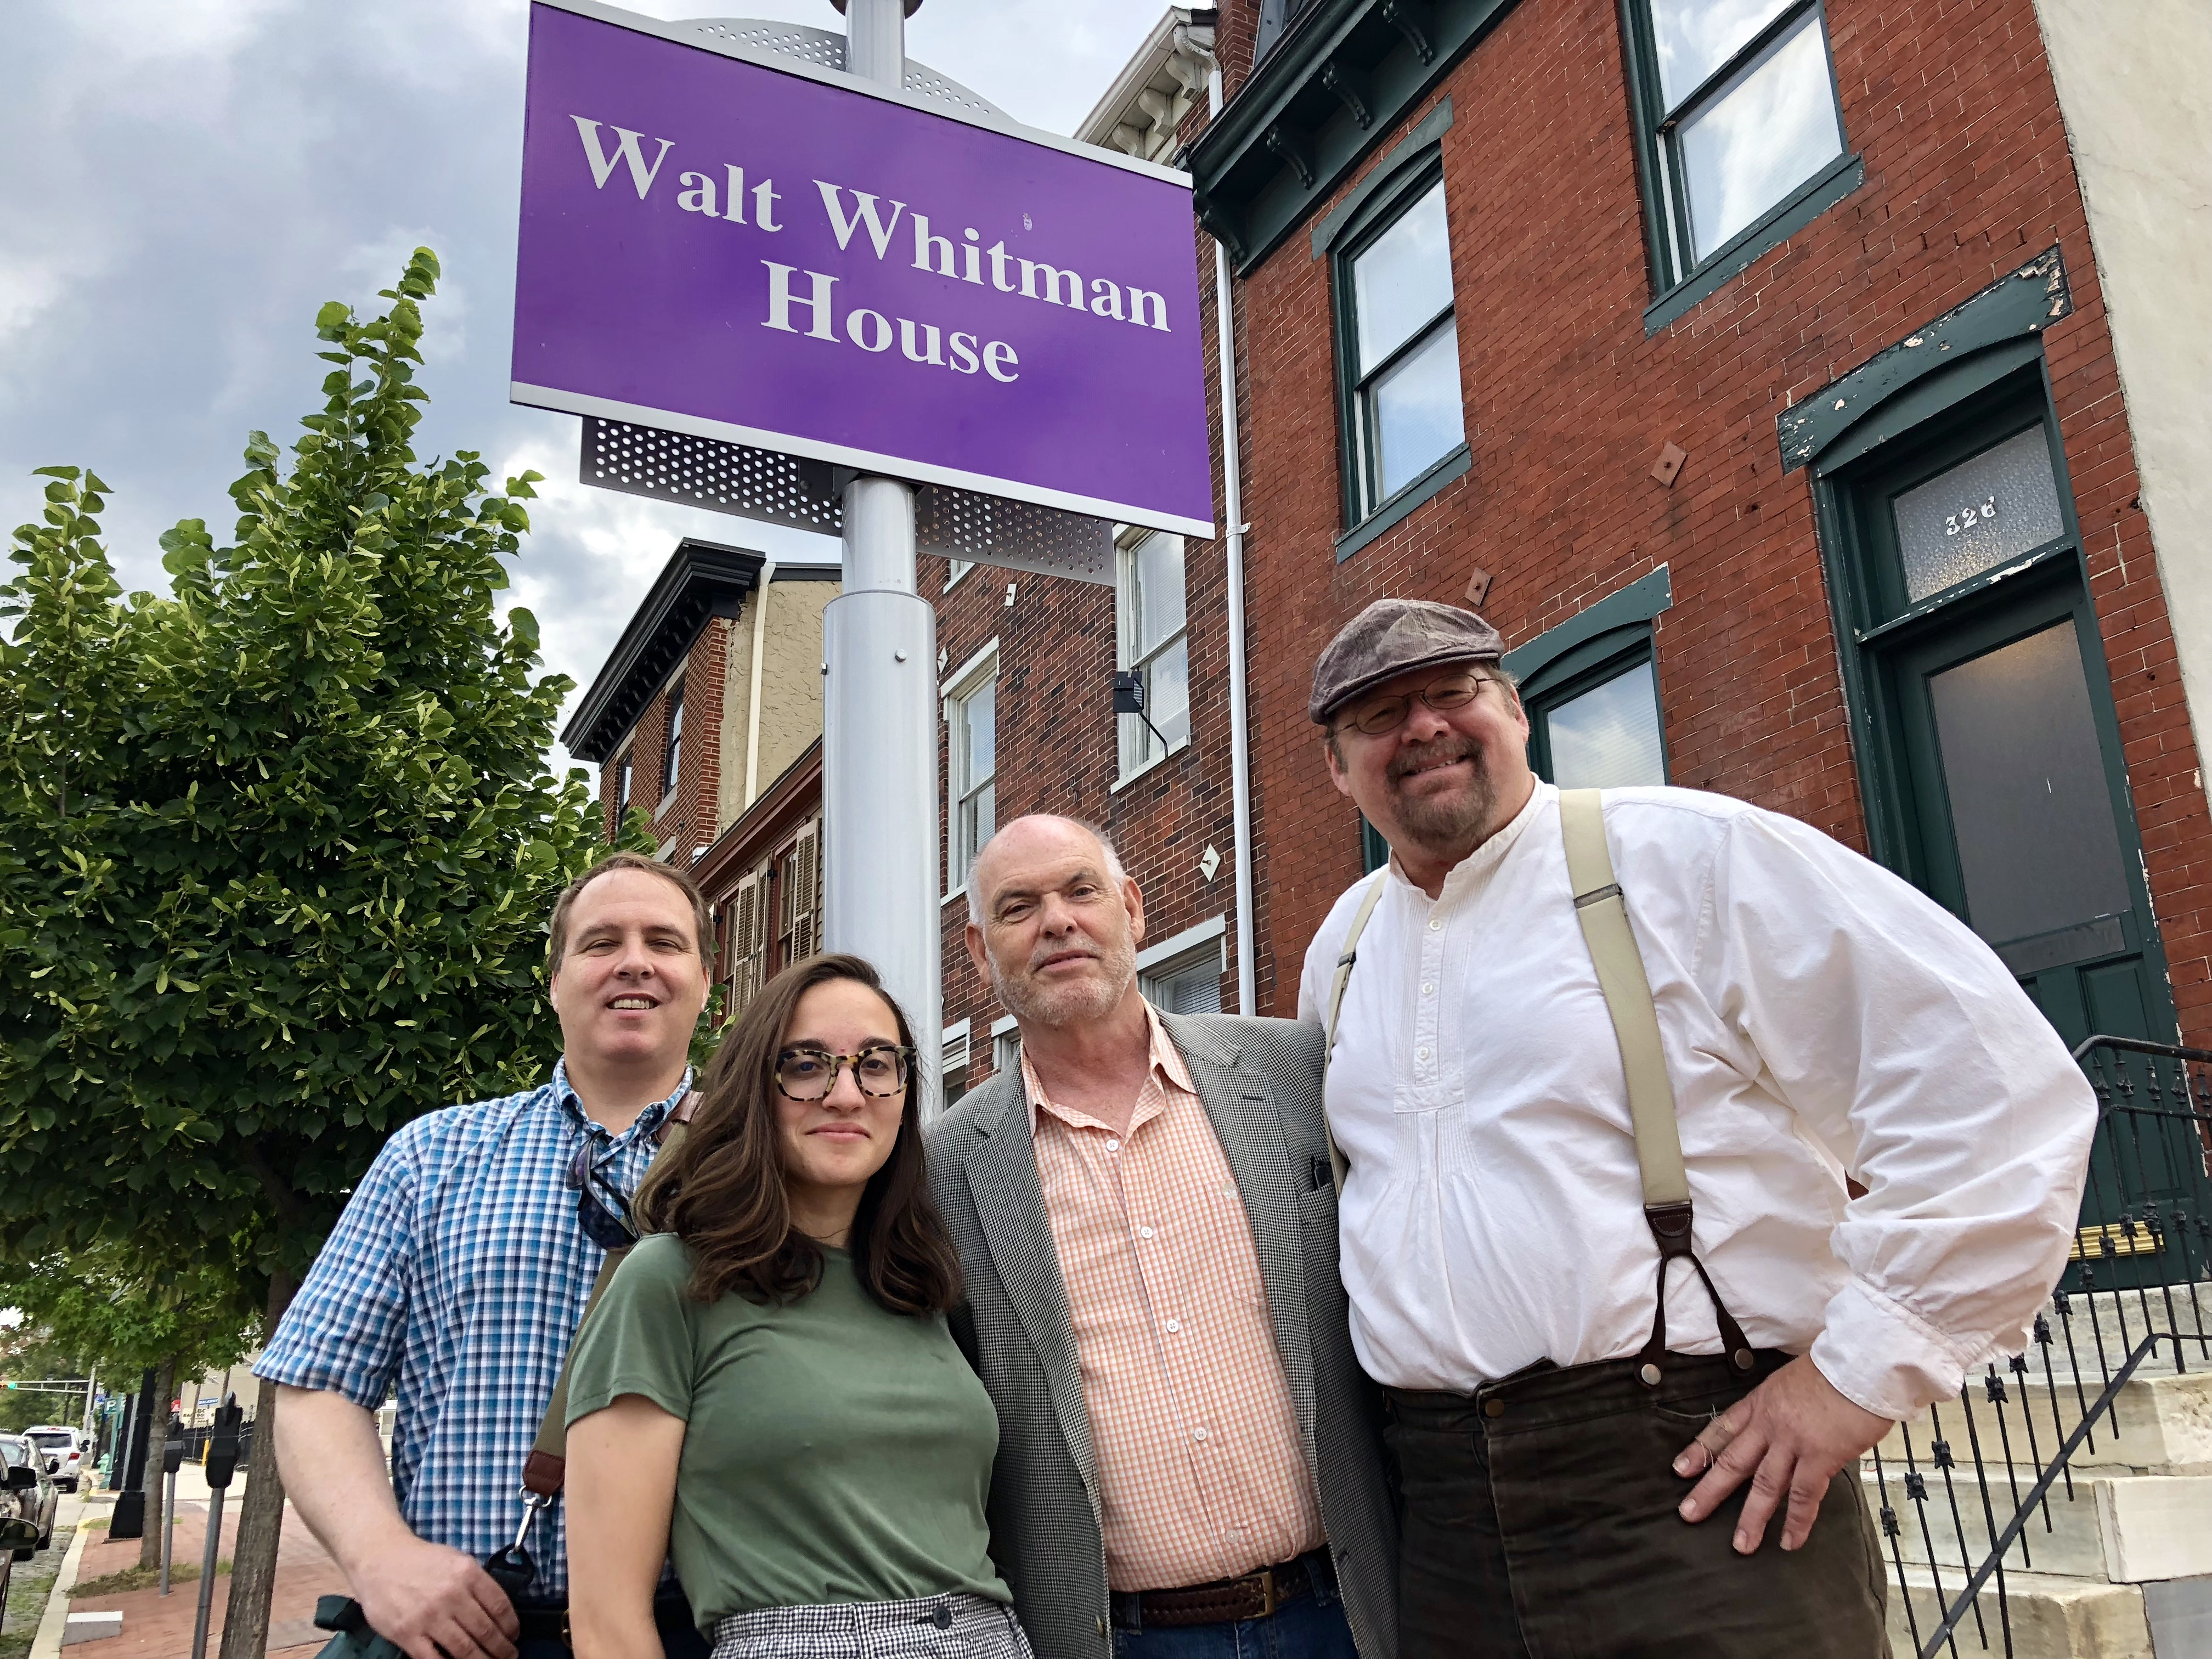 At outside the Walt Whitman House with Paul Kenney, Pauline Miller, John McPeak and Leo Blake. Blake is curator of the house, Miller is his assistant, and McPeak and Kenney are board members of the Walt Whitman Association. The three houses around the two-story Whitman house will be restored.